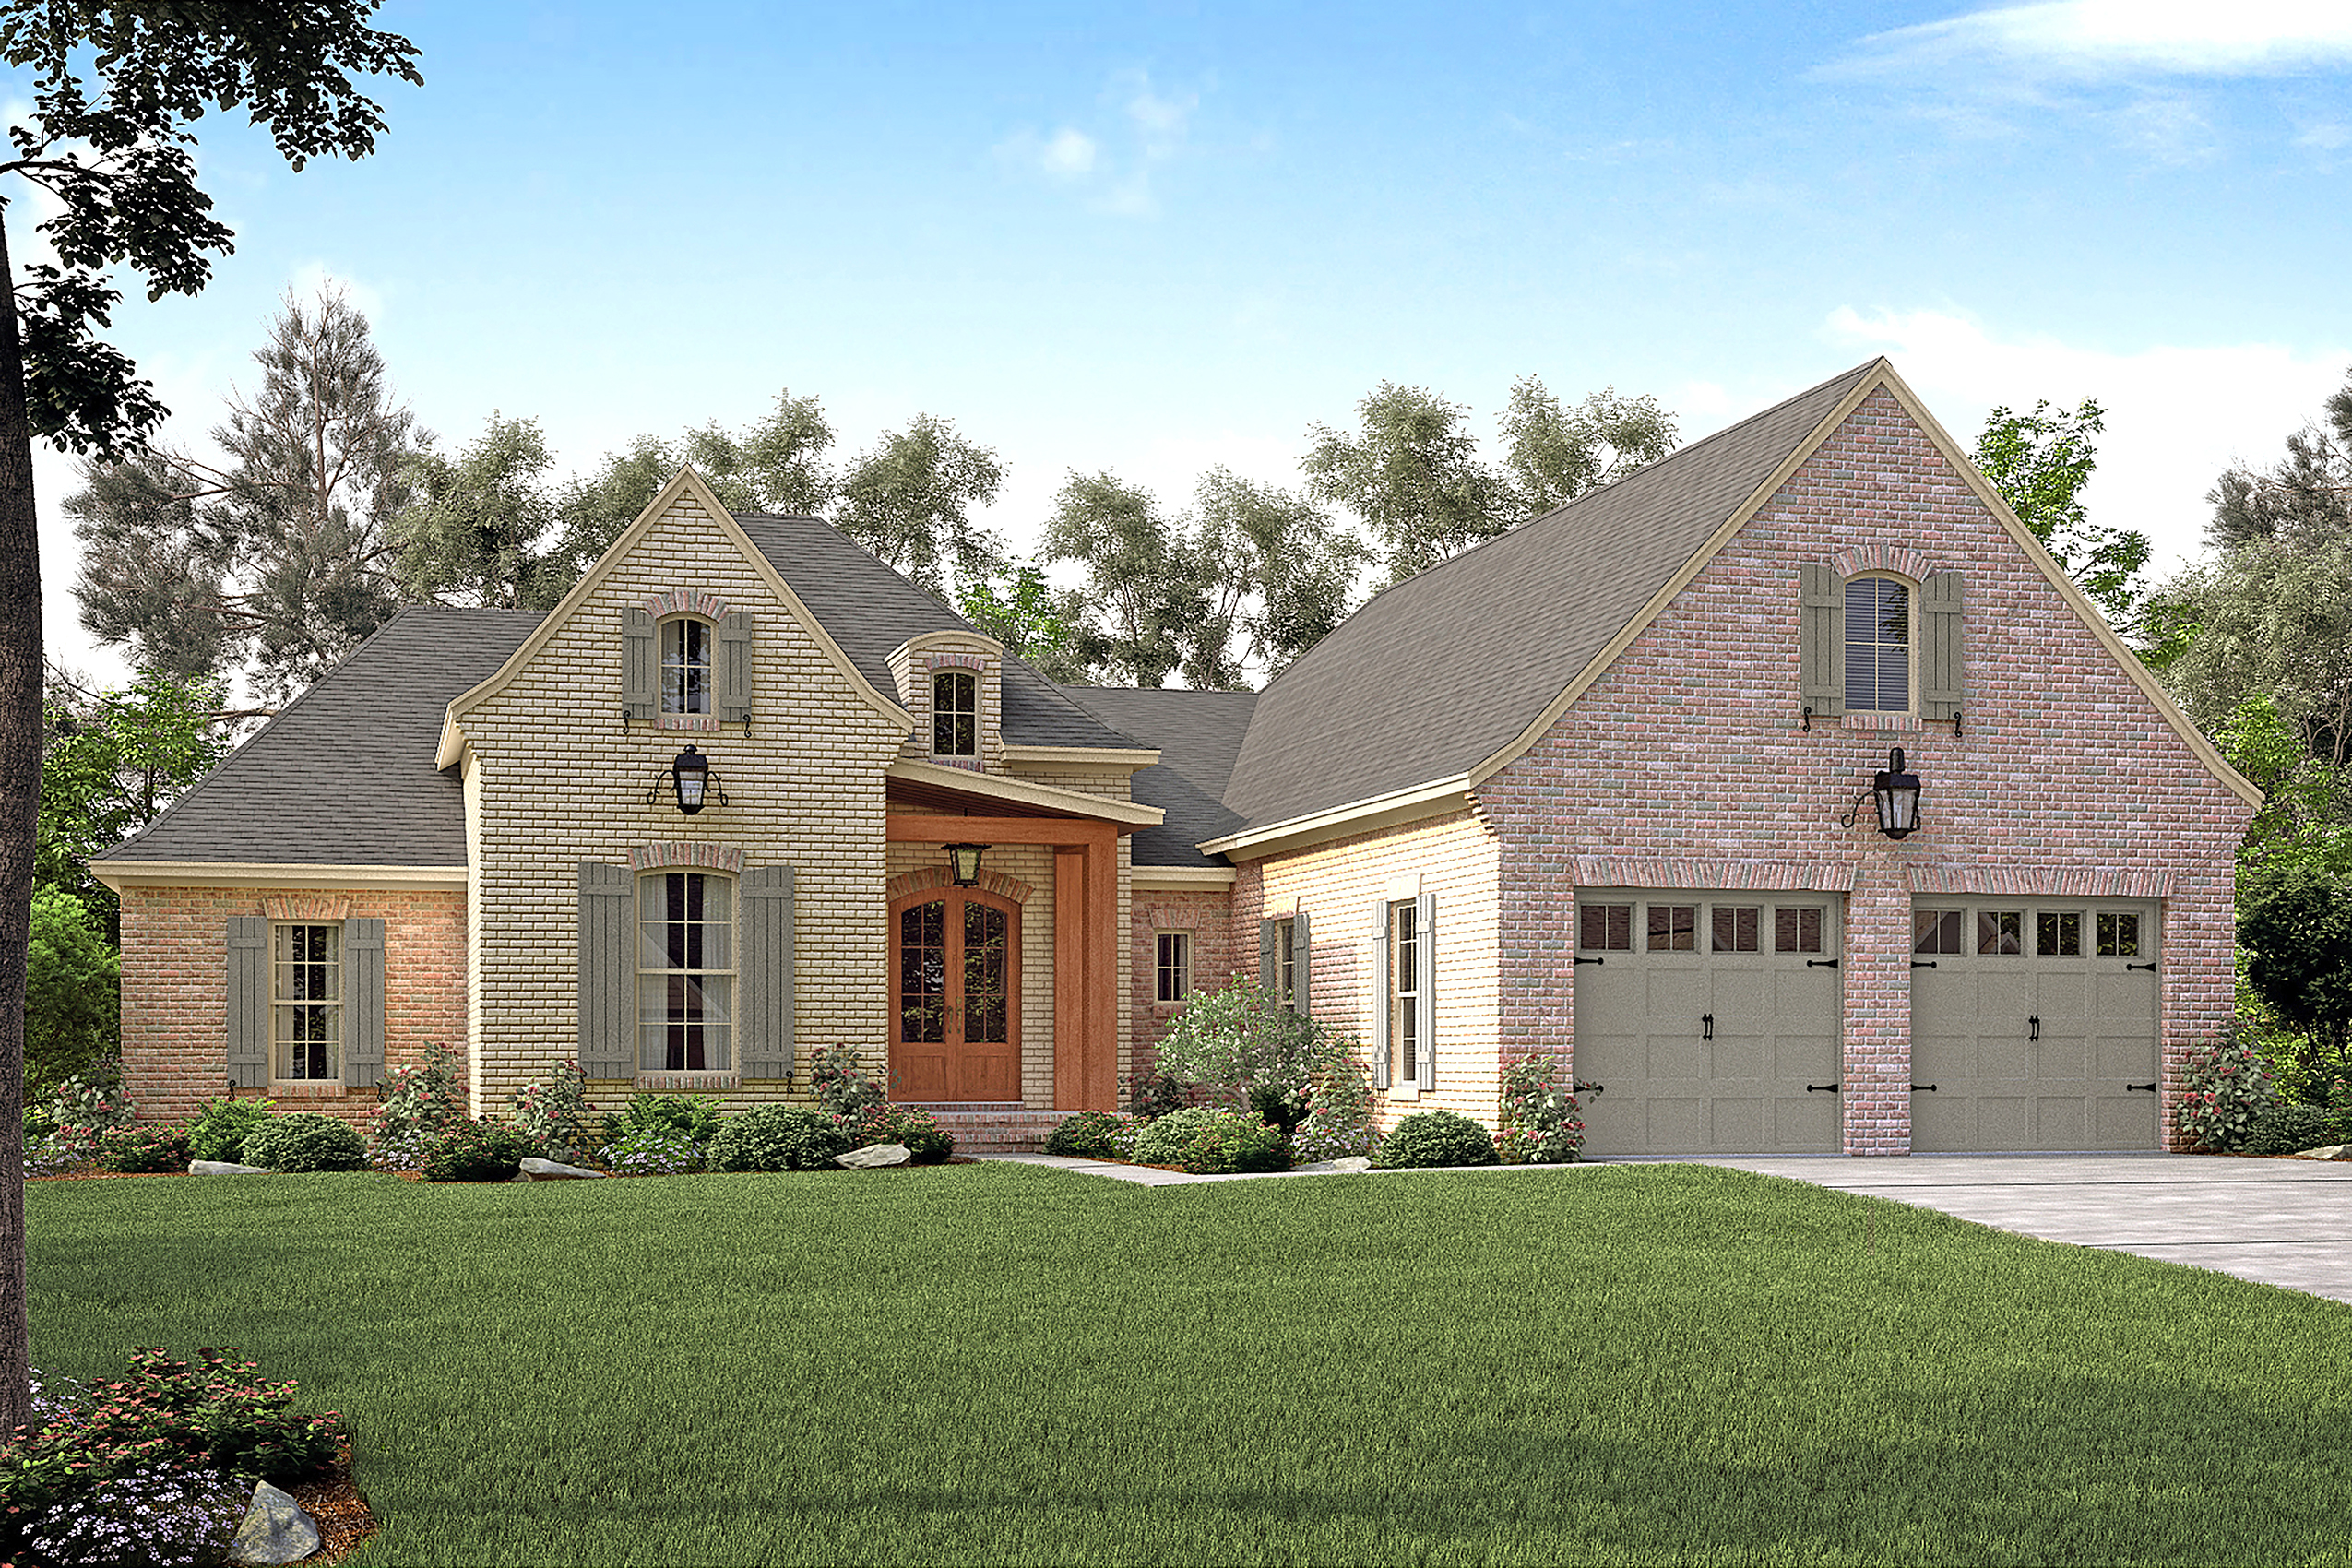 French house plan 142 1149 3 bedrm 2217 sq ft home plan for Design your house